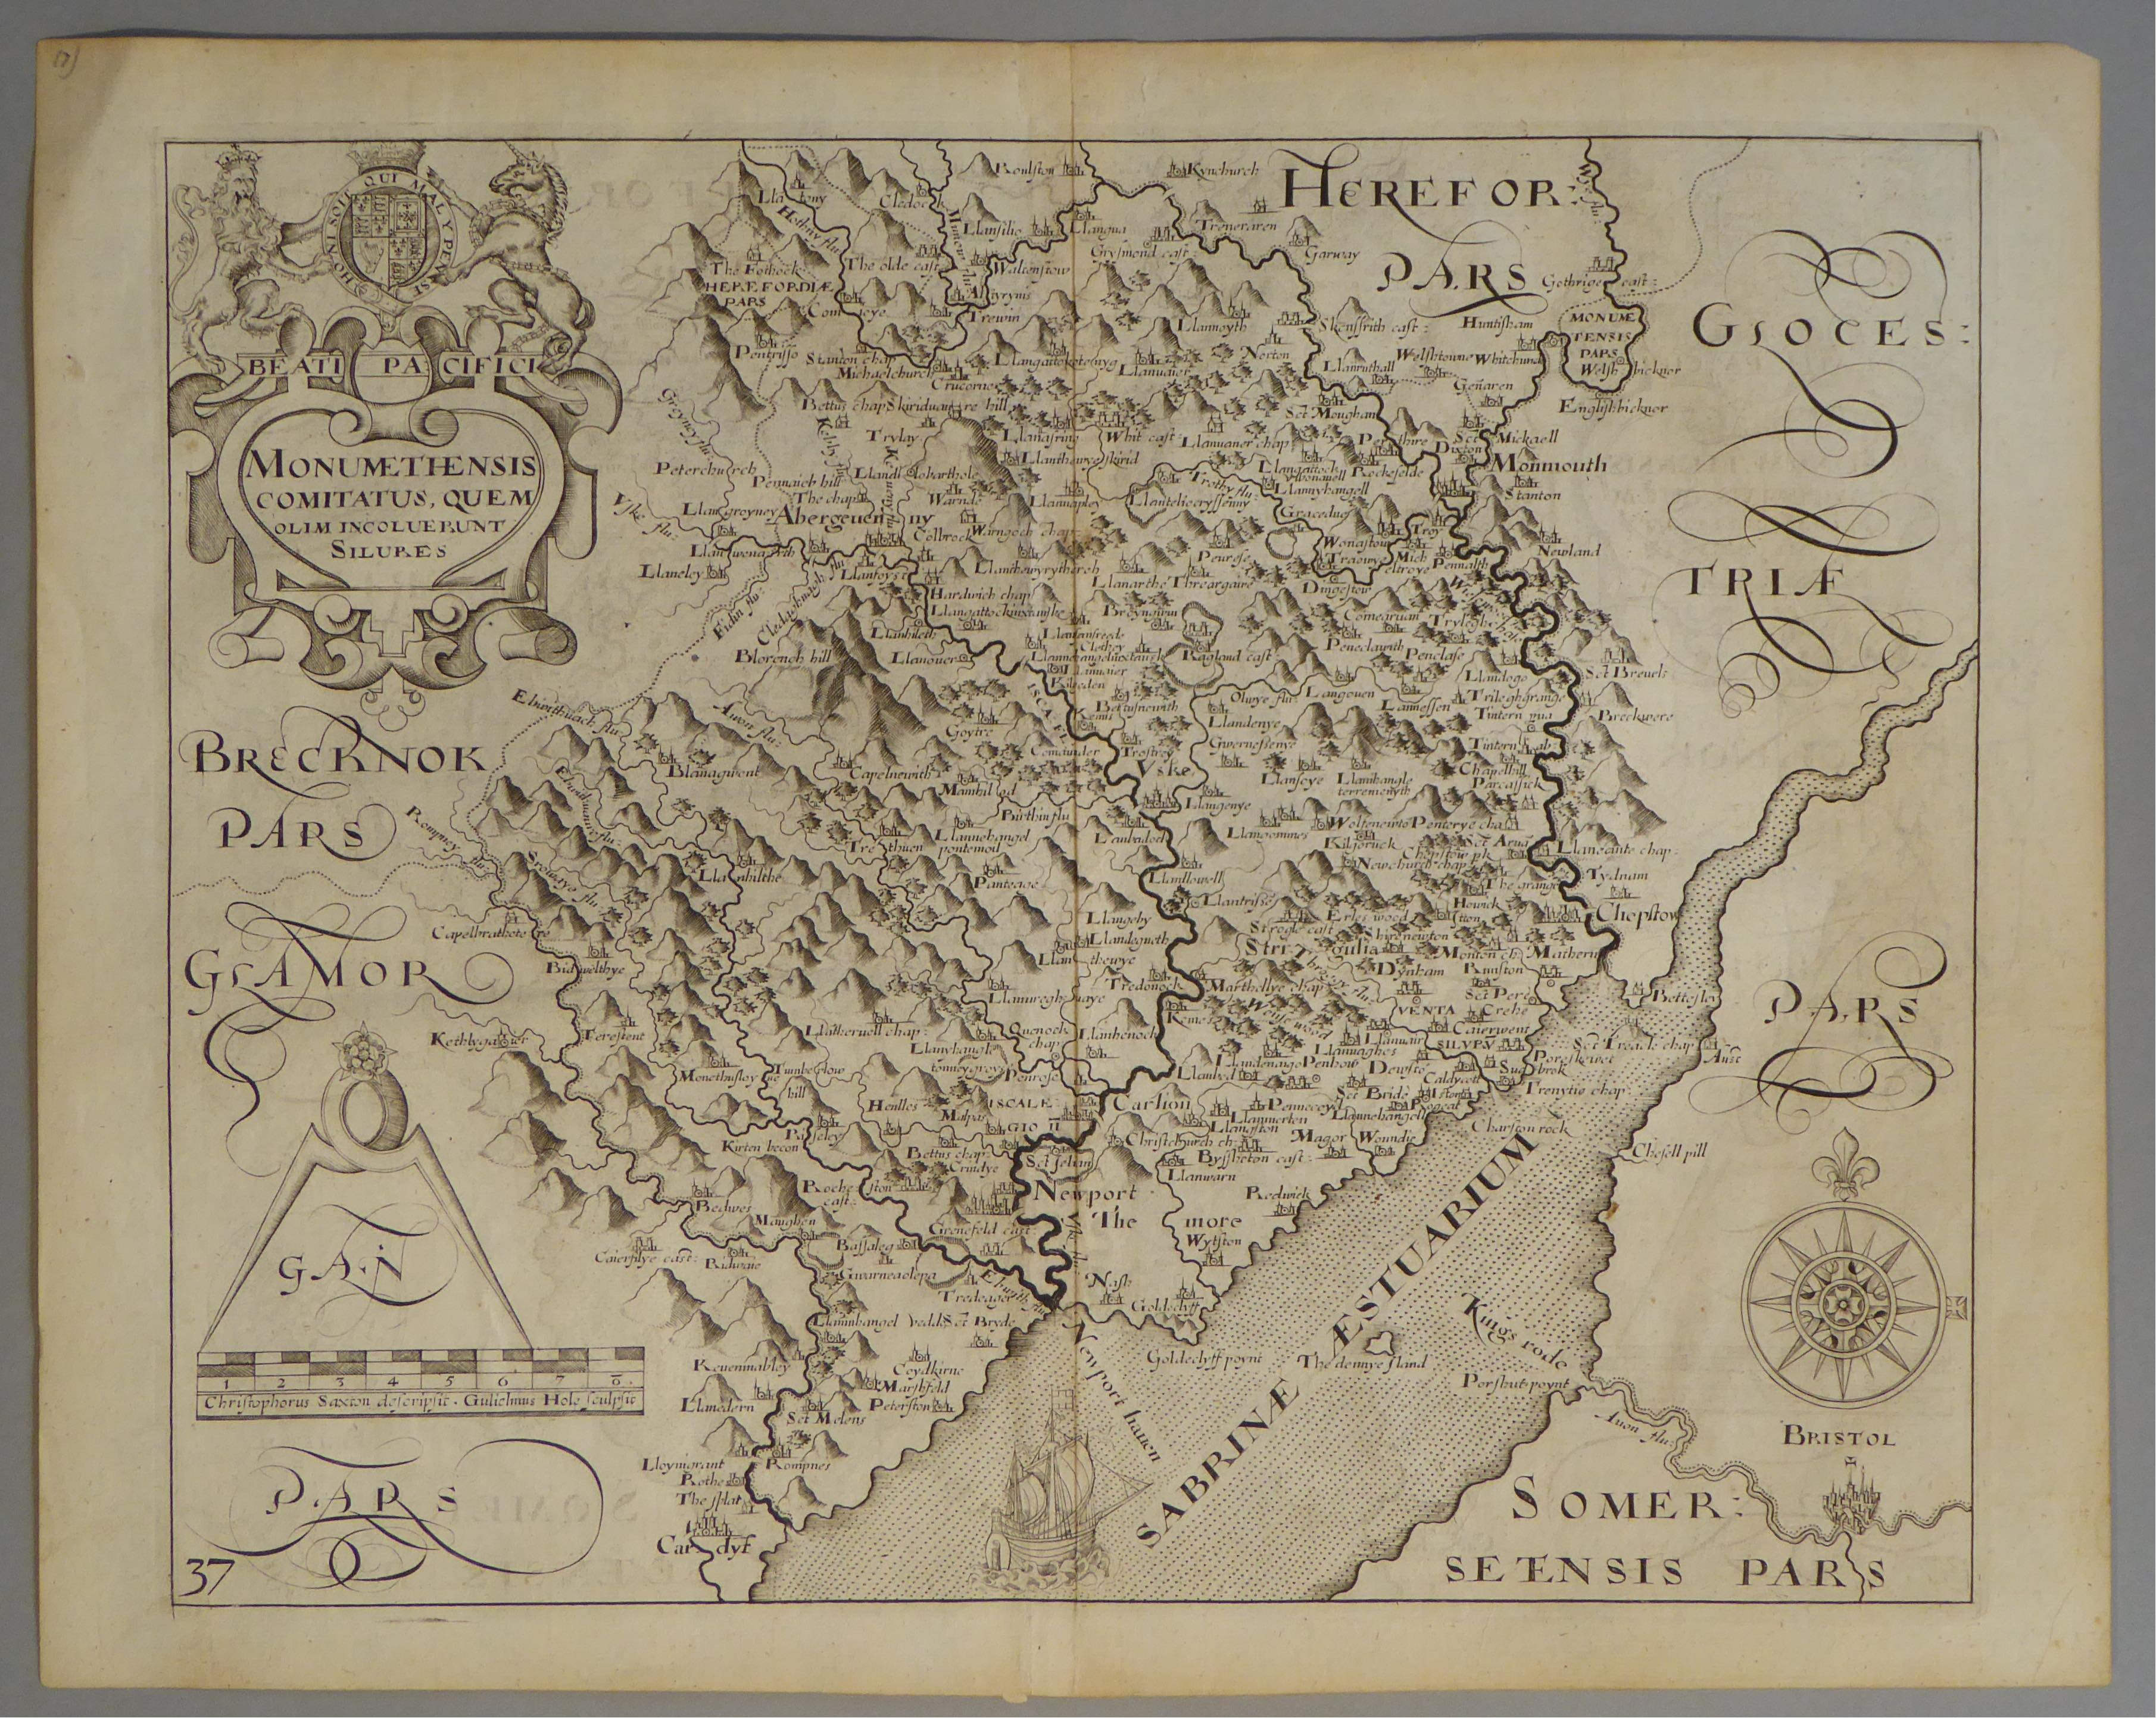 Lot 46 - A C17th Black & White copper engraved map of Monmouthshire by William Hole c1637